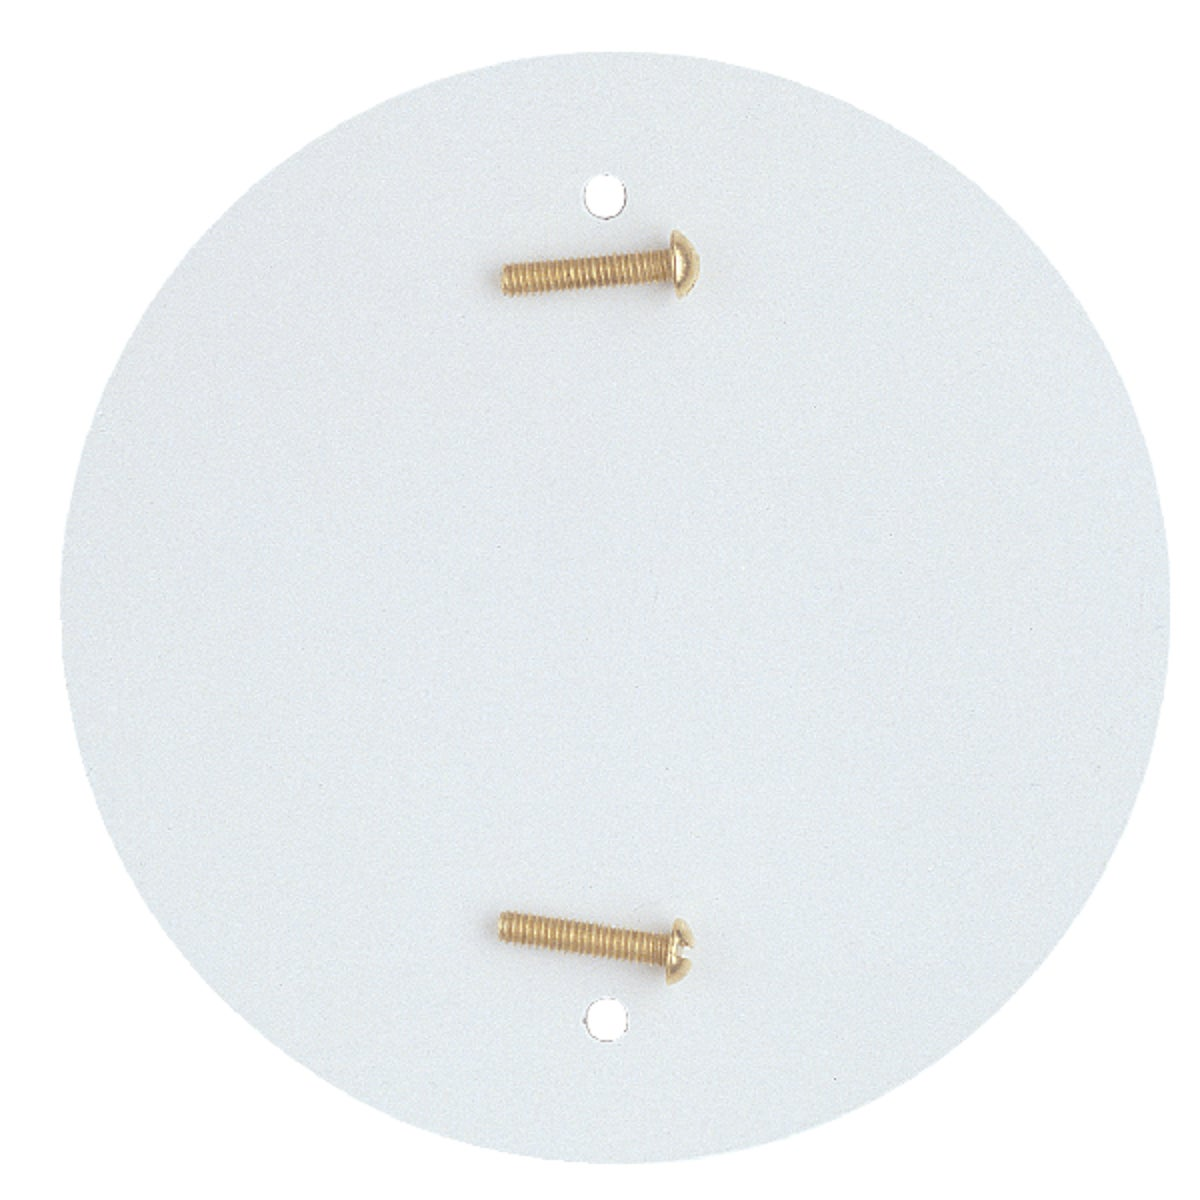 Wht Blank-Up Plate